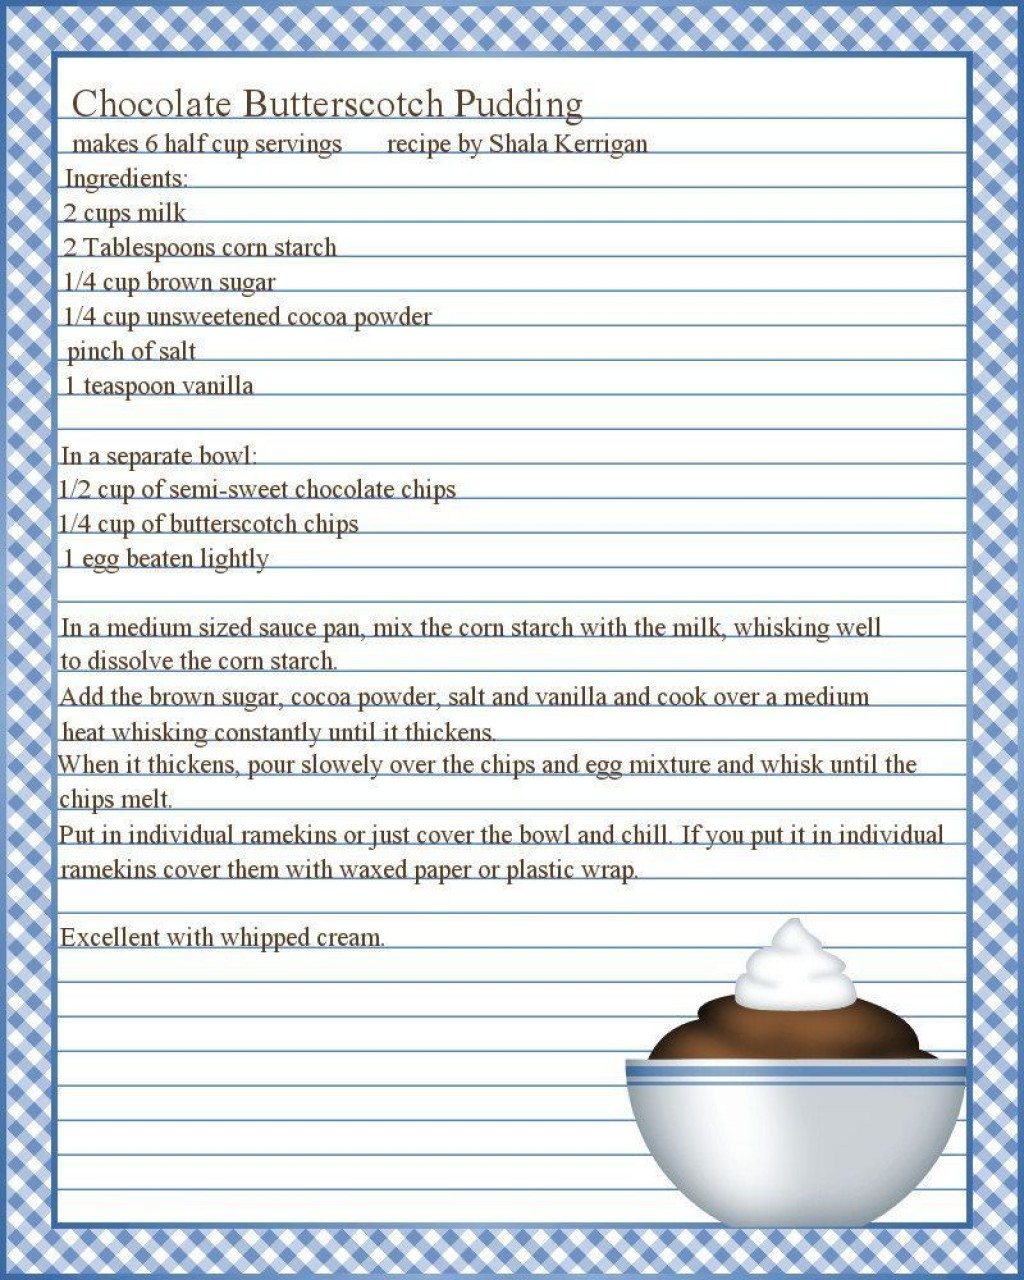 004 Staggering Full Page Recipe Template Editable Example  For Word FreeLarge